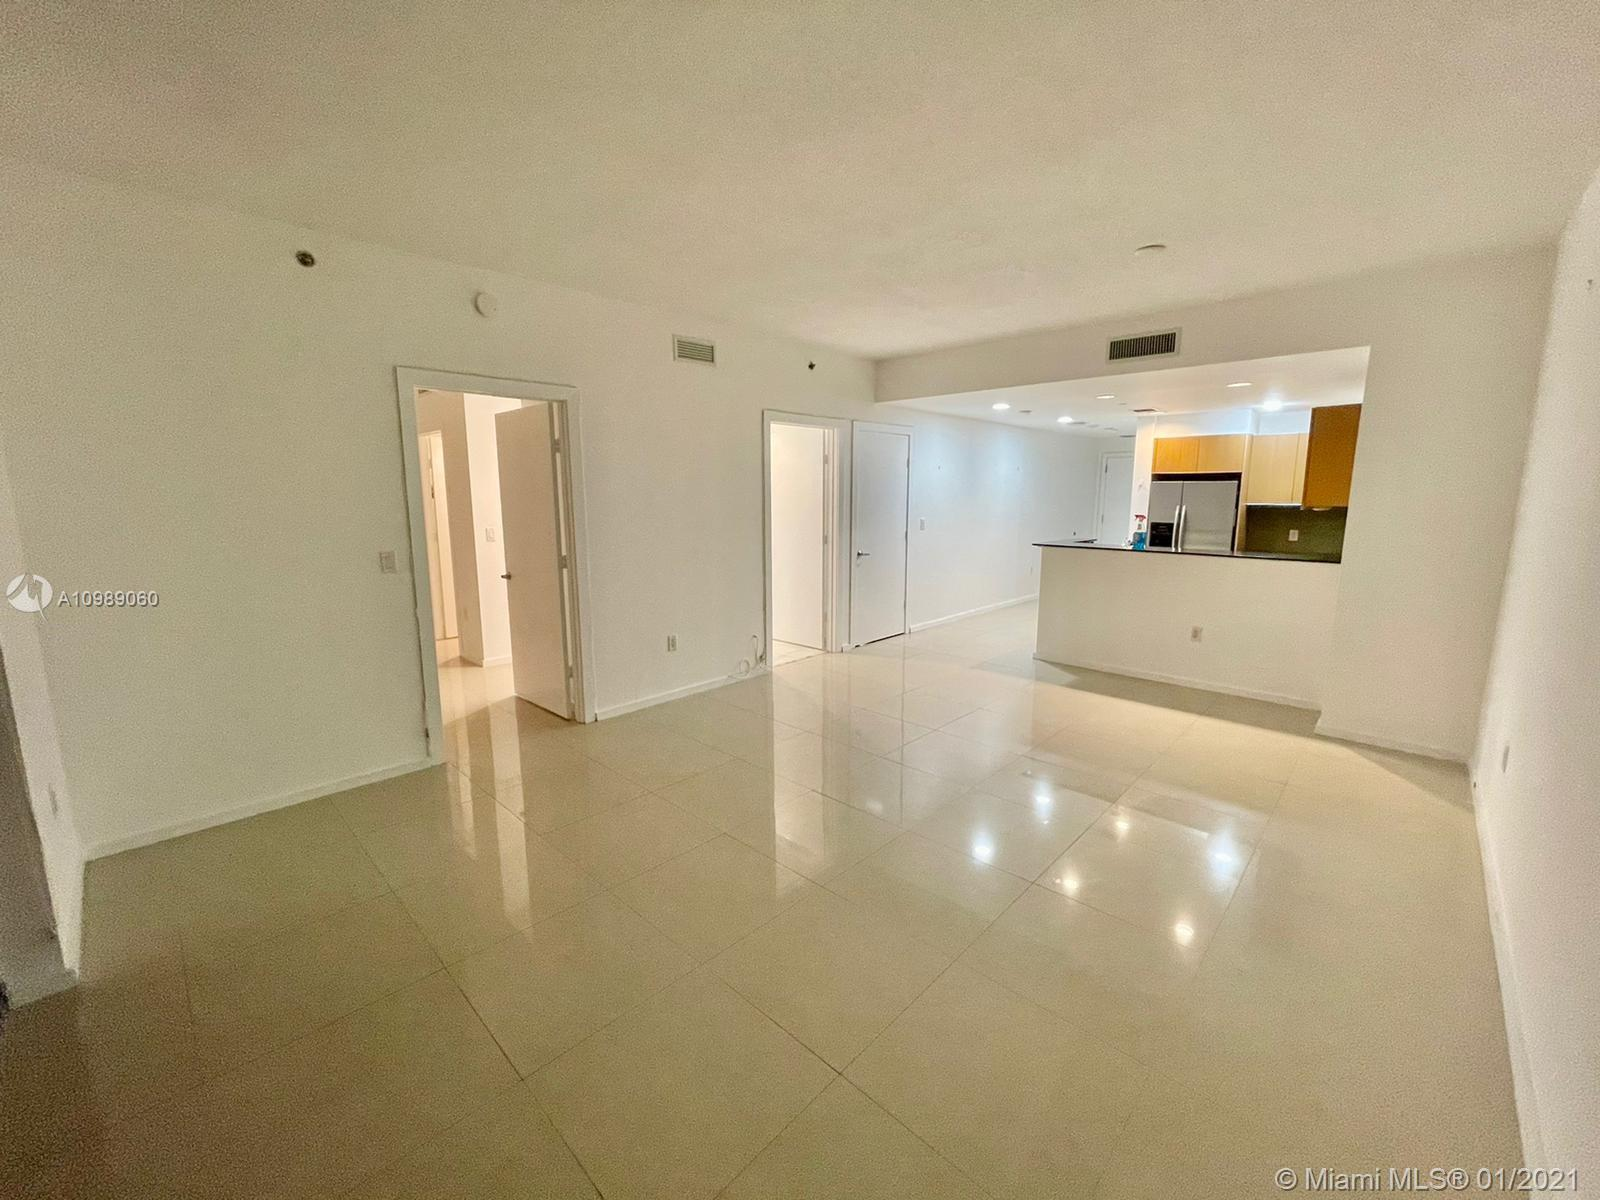 1060 Brickell West Tower #2715 - 1060 Brickell Ave #2715, Miami, FL 33131